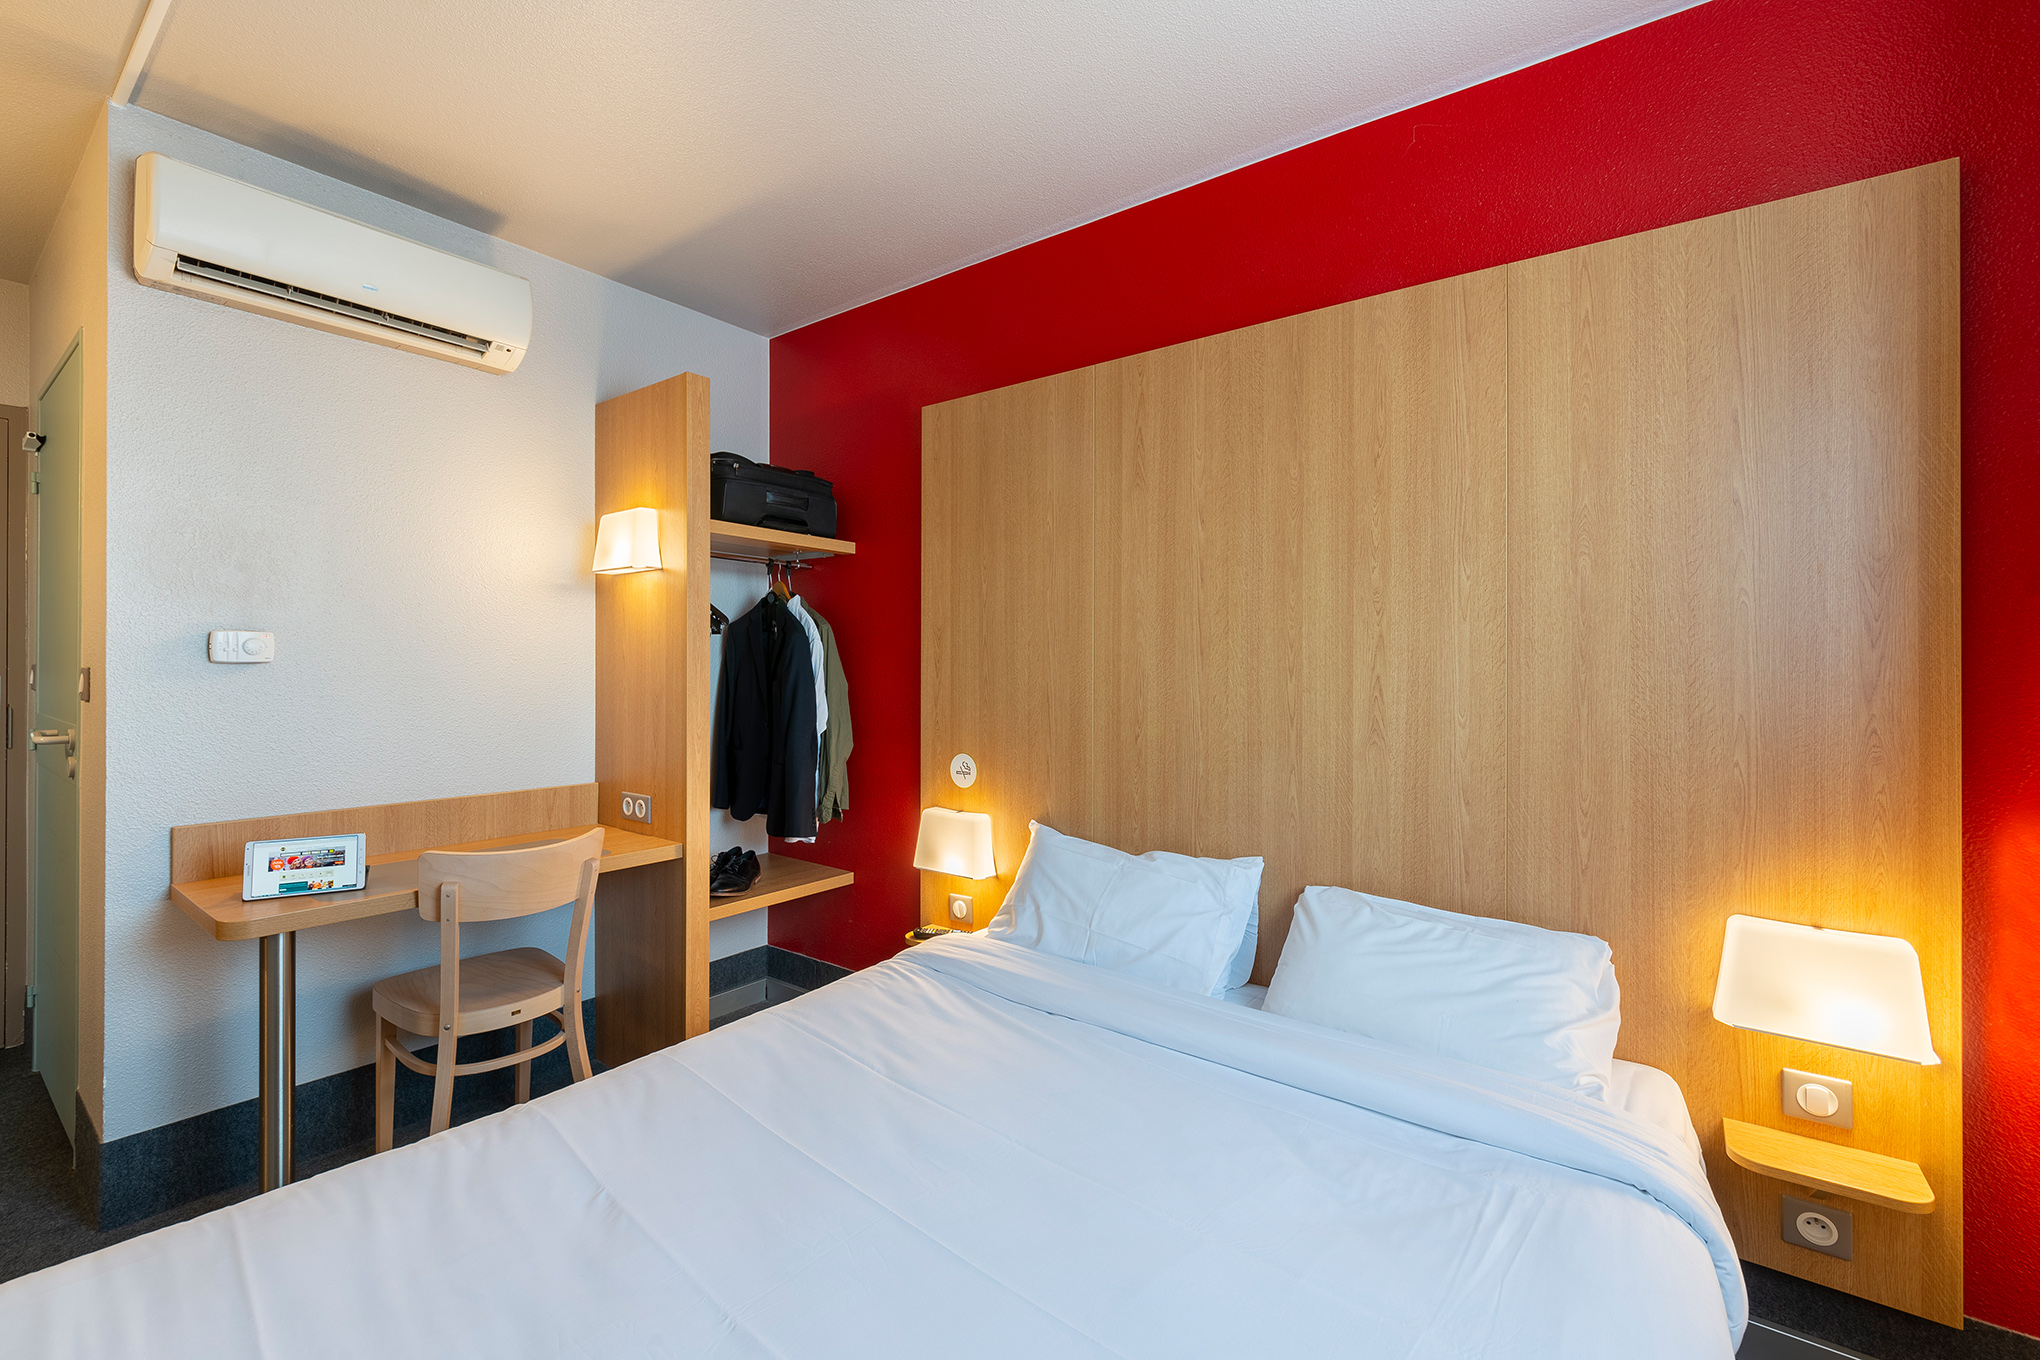 B b h tel cholet centre h tel 4 place michel ange 49300 for Appart hotel cholet